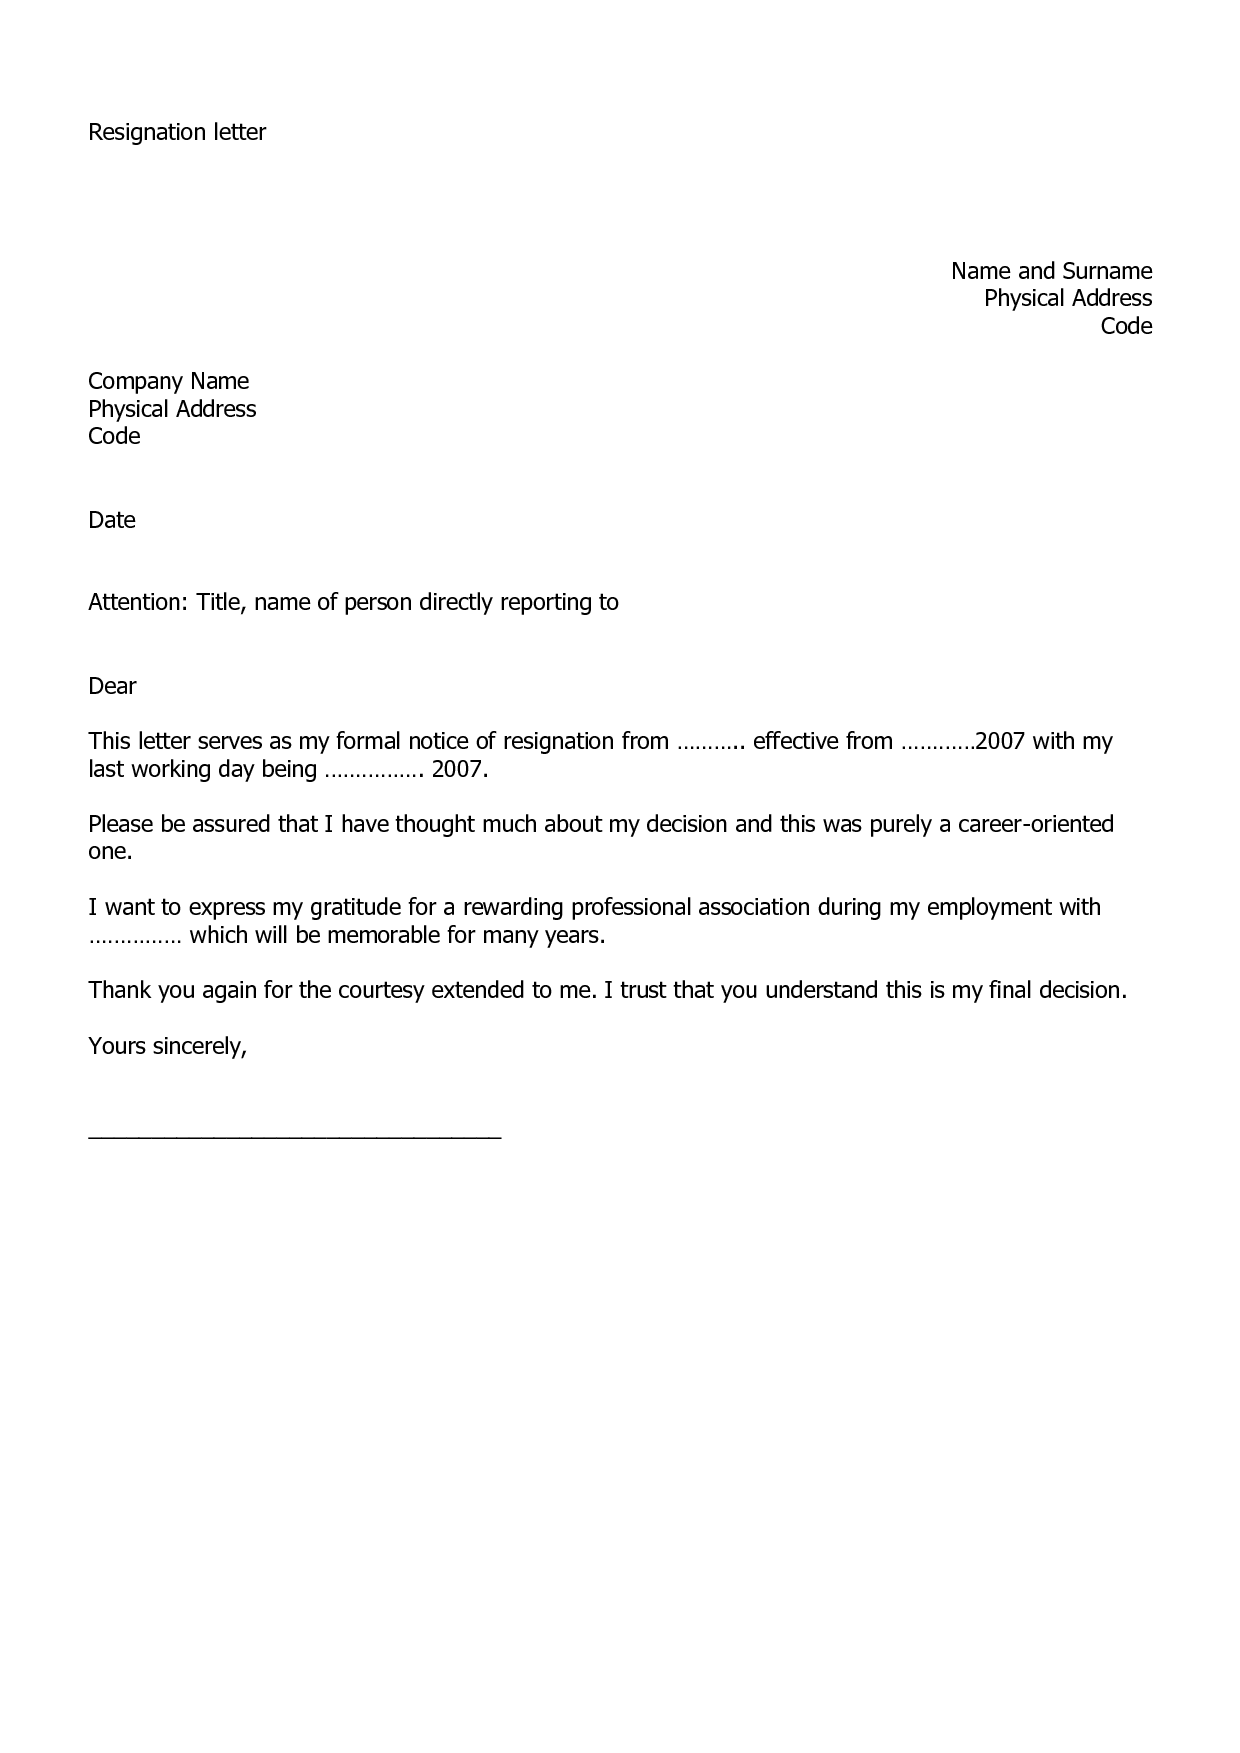 resignation letter last day best teh resignation letter last day how to write a resignation letter sample resignation resignation letter example